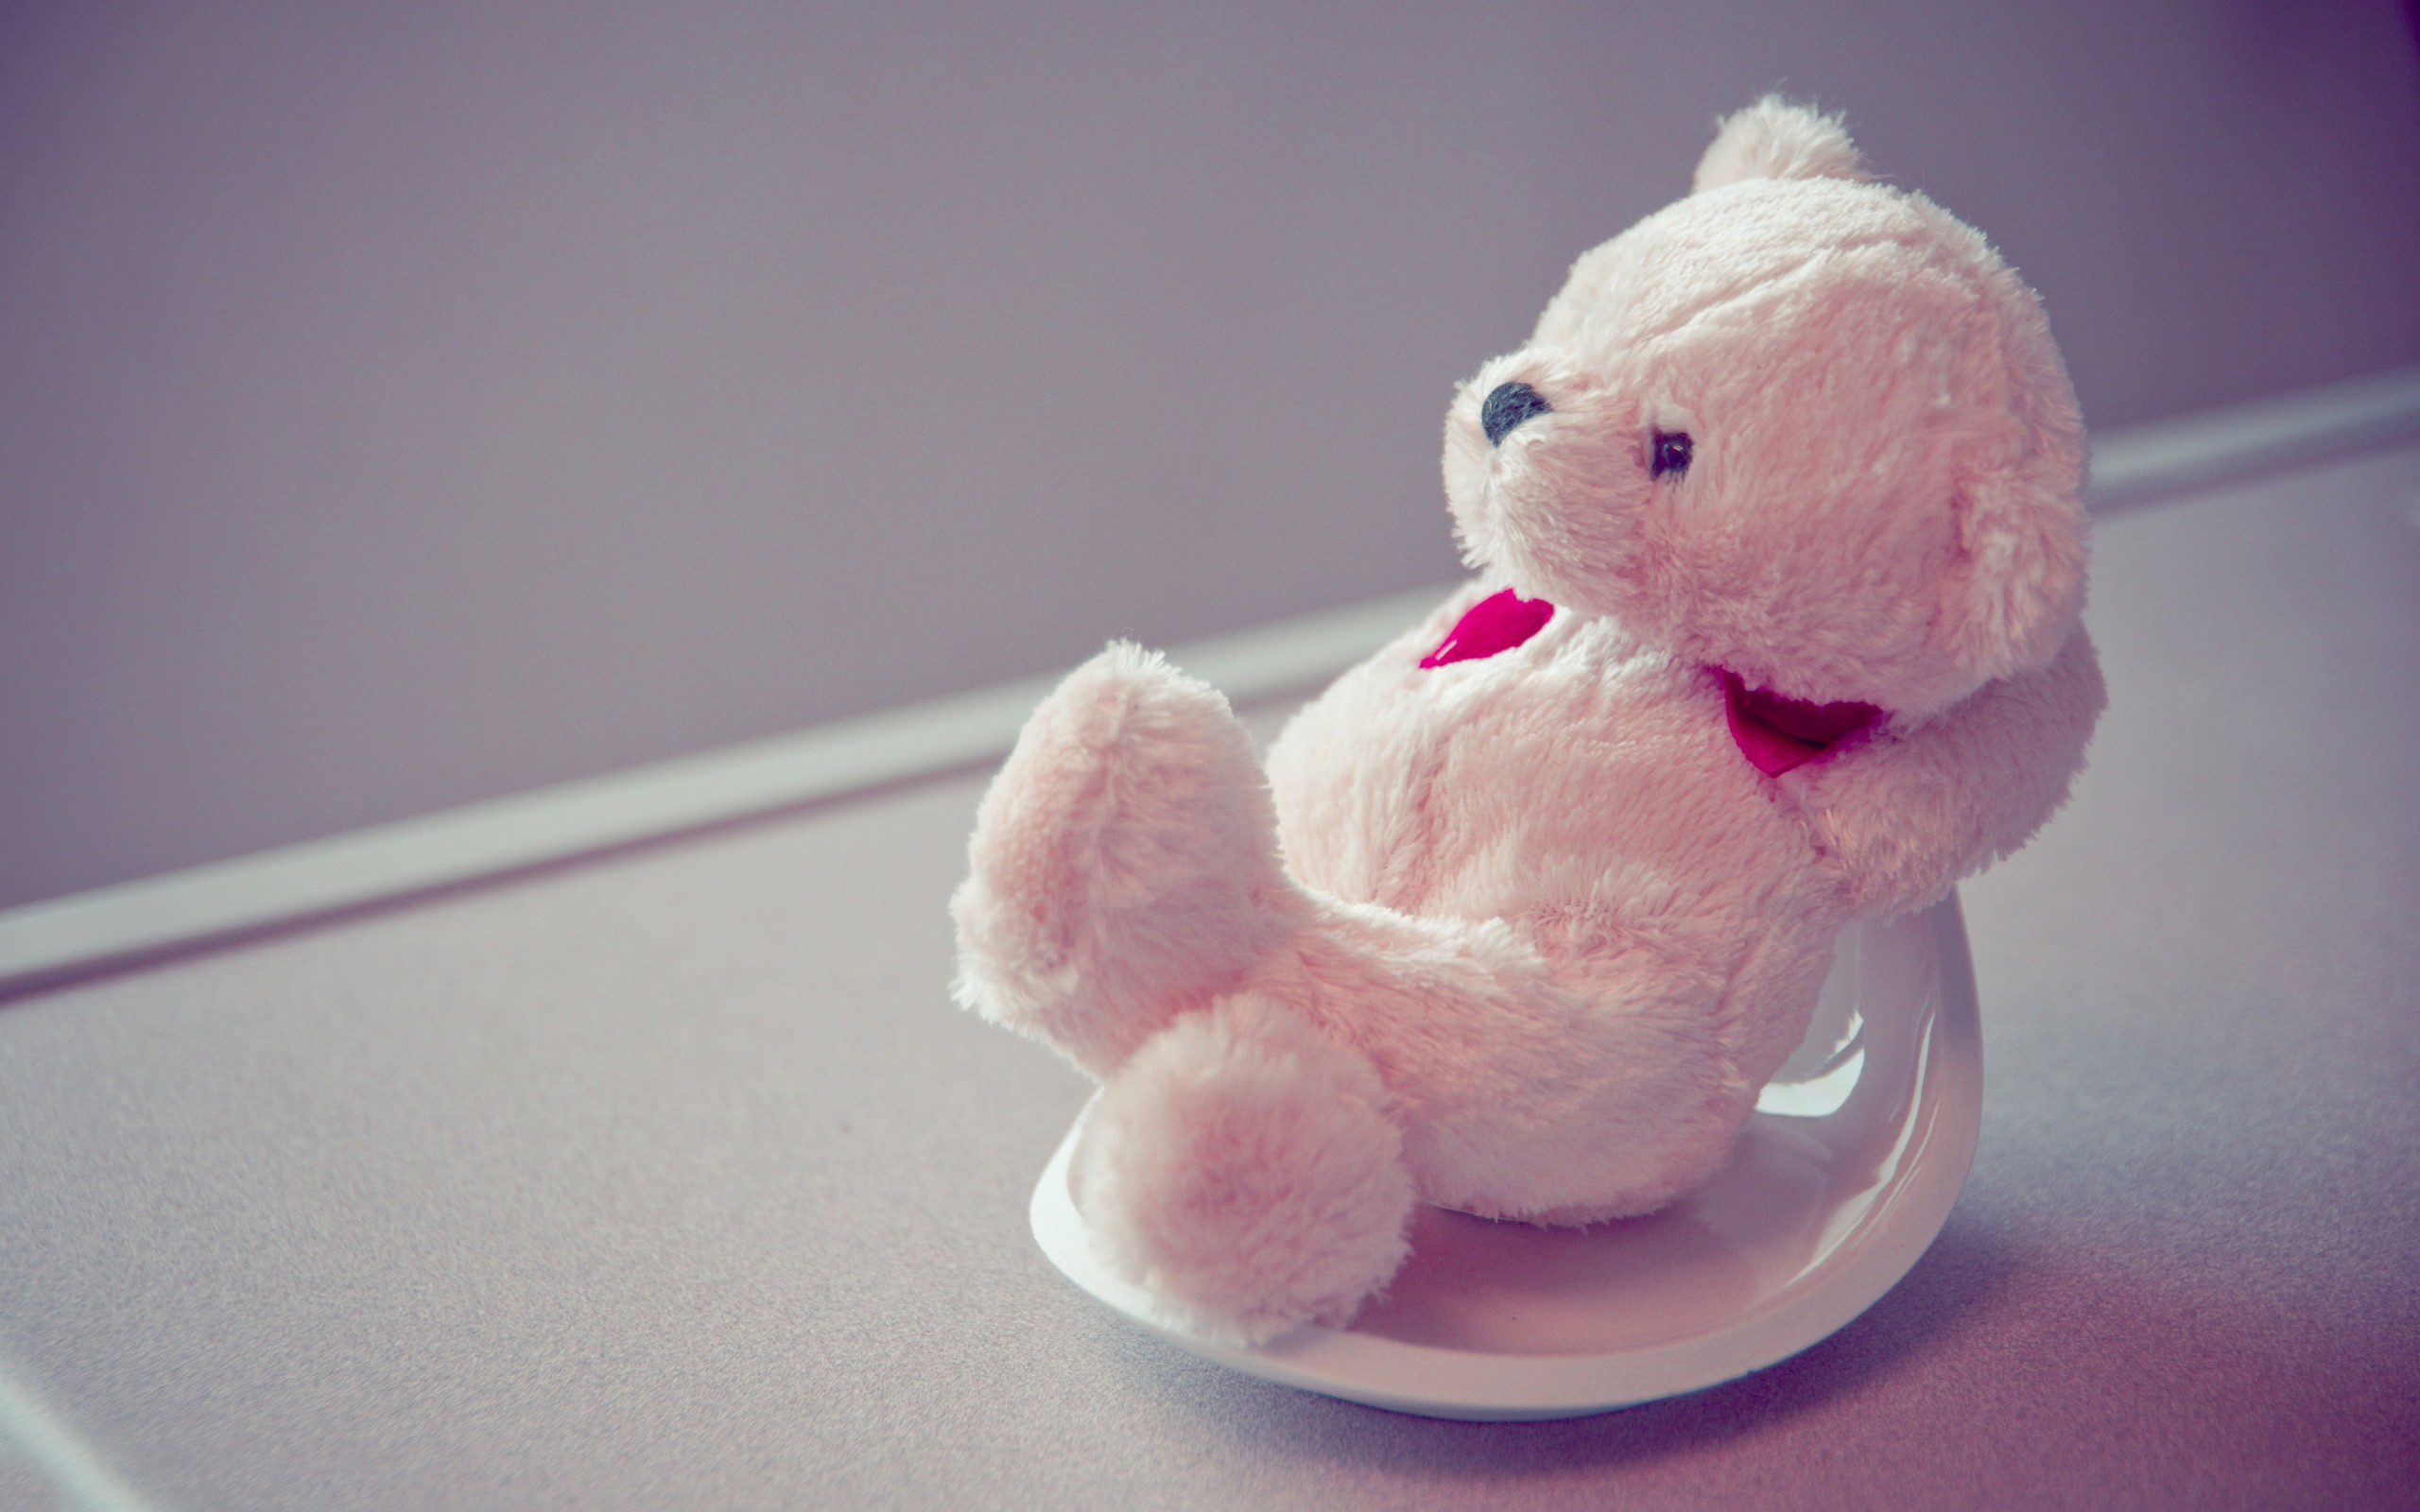 Teddy bear computer wallpaper